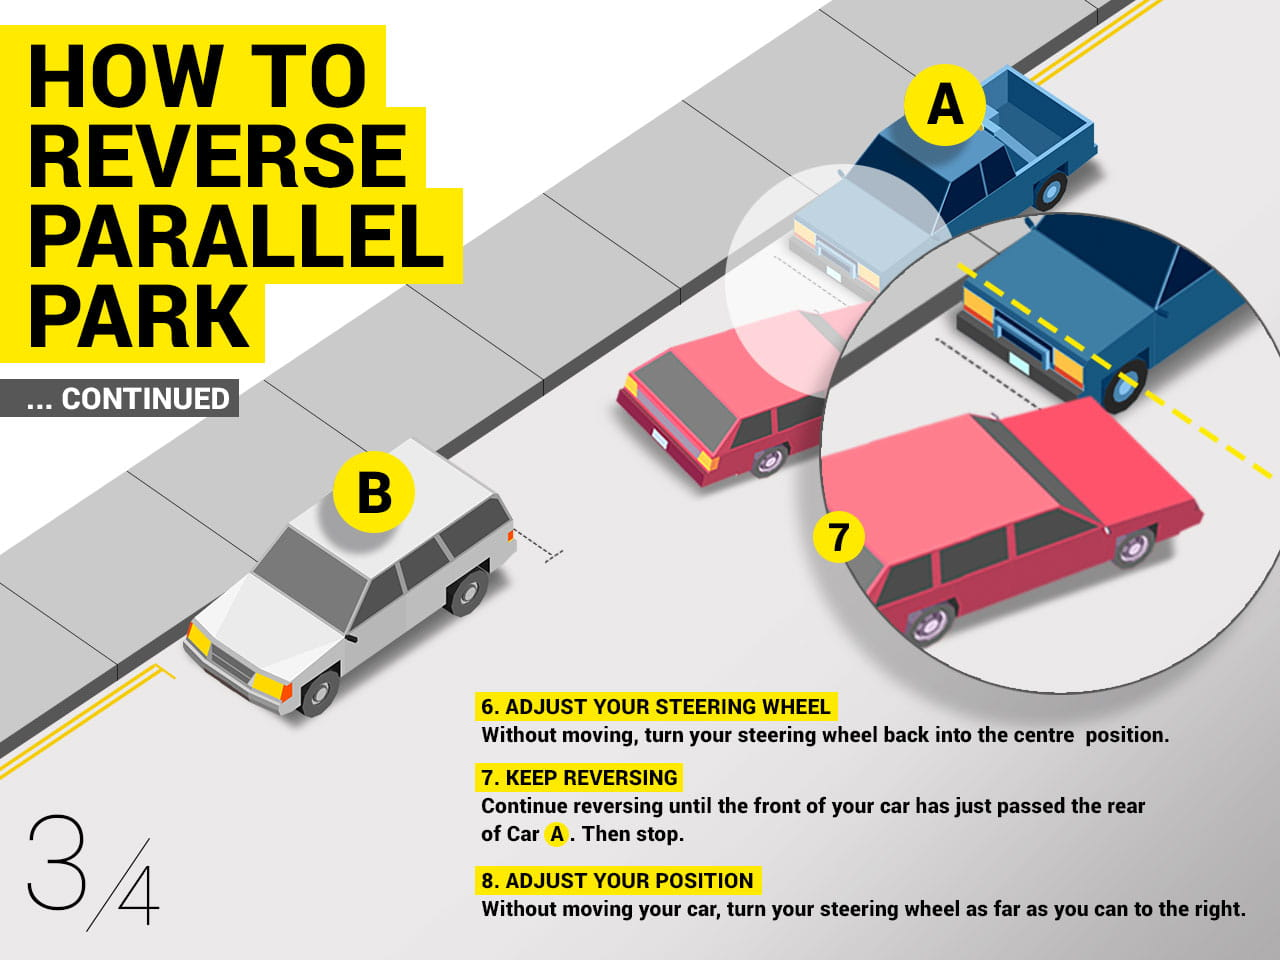 How to reverse parallel park a car infographic